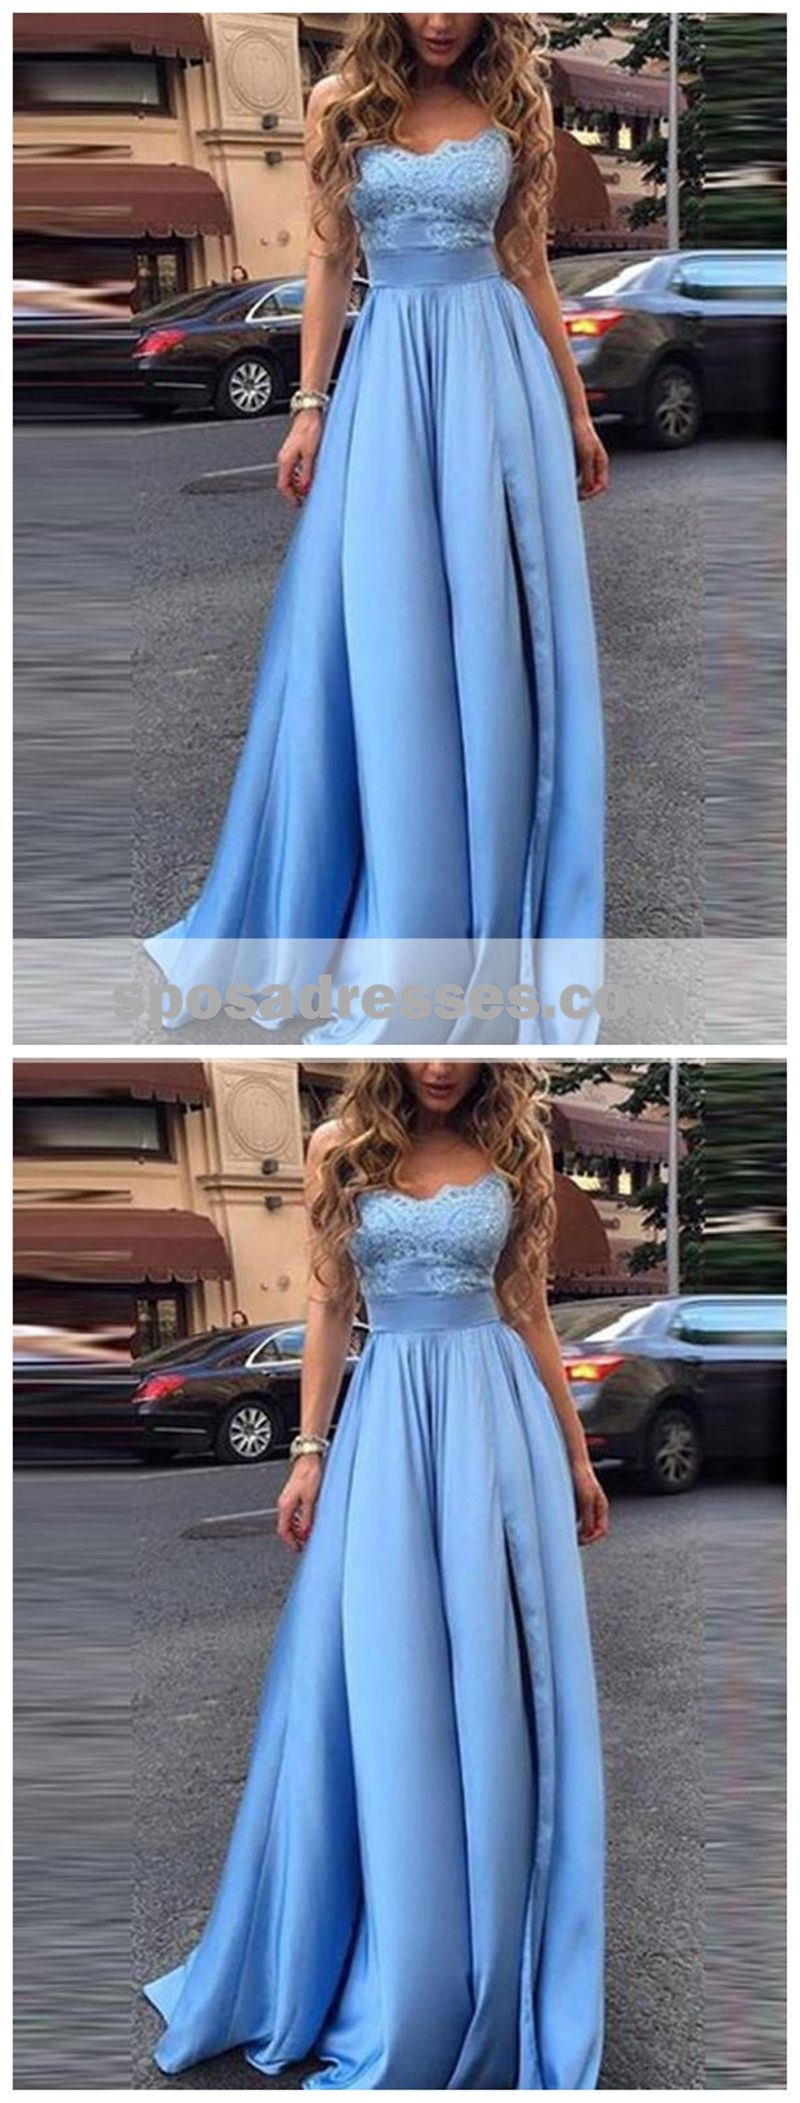 Simple lace bodice sweetheart aline long evening prom dresses